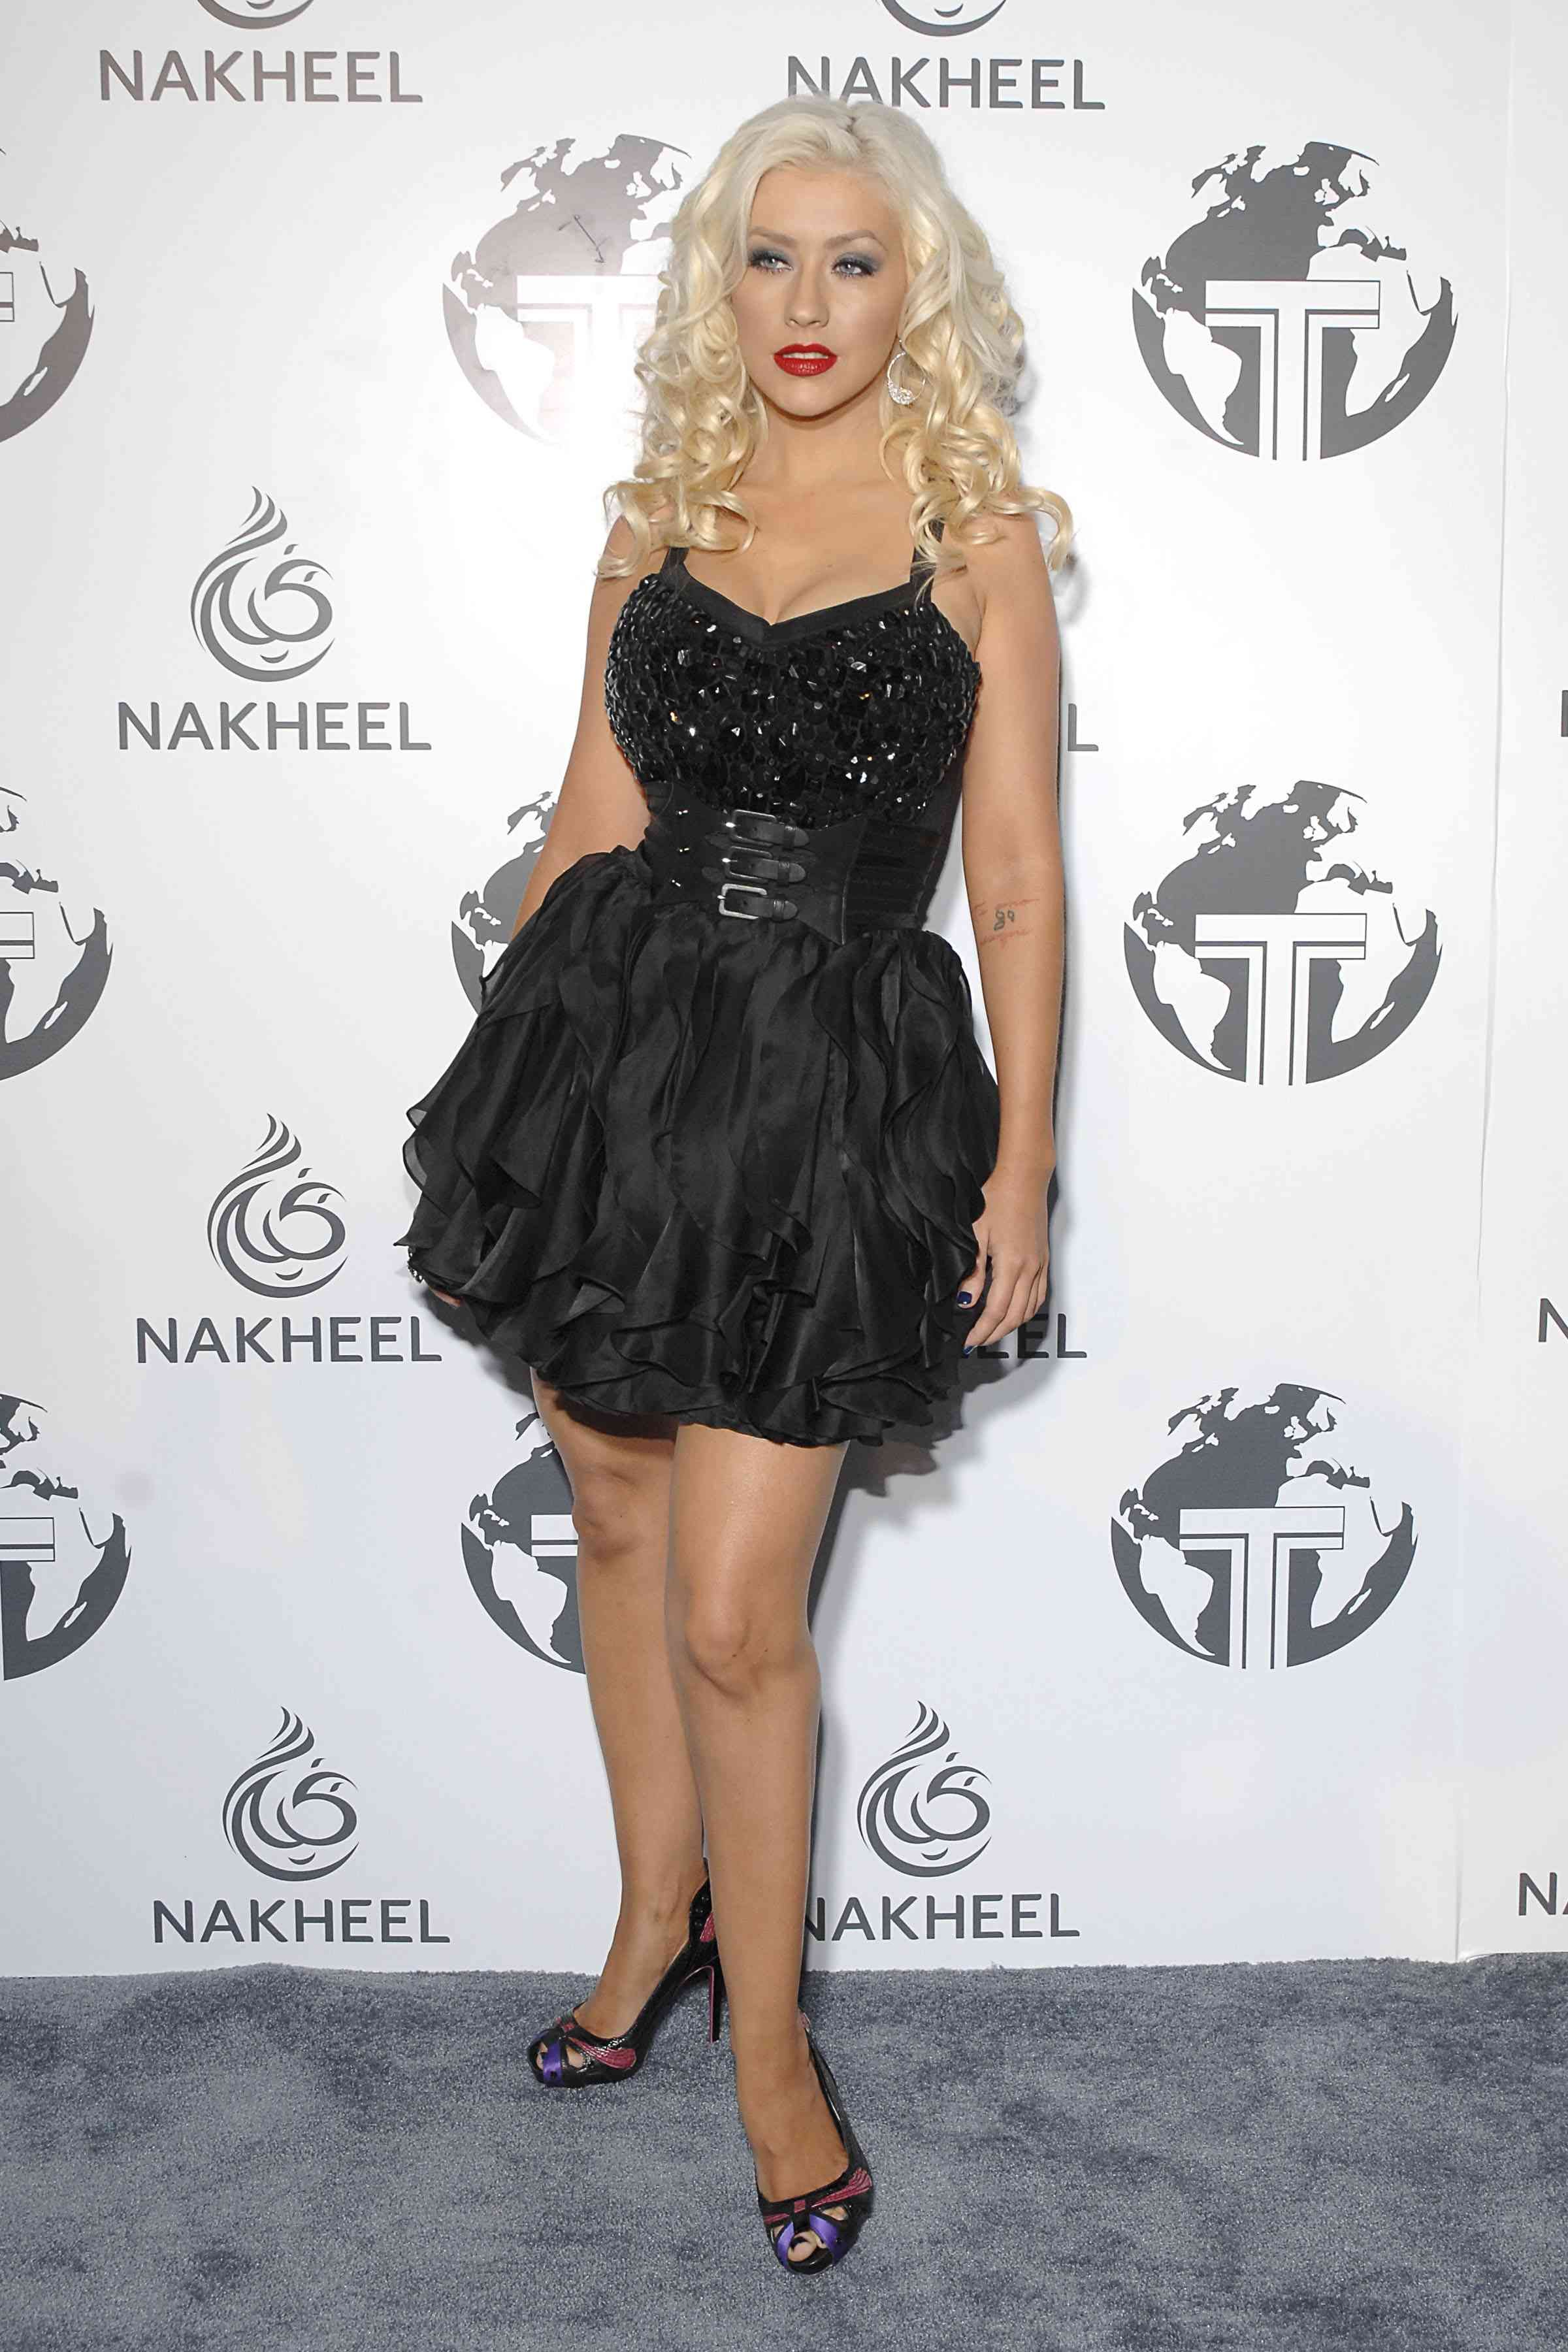 Sideboobs Christina Aguilera nude (85 foto and video), Tits, Fappening, Feet, braless 2006